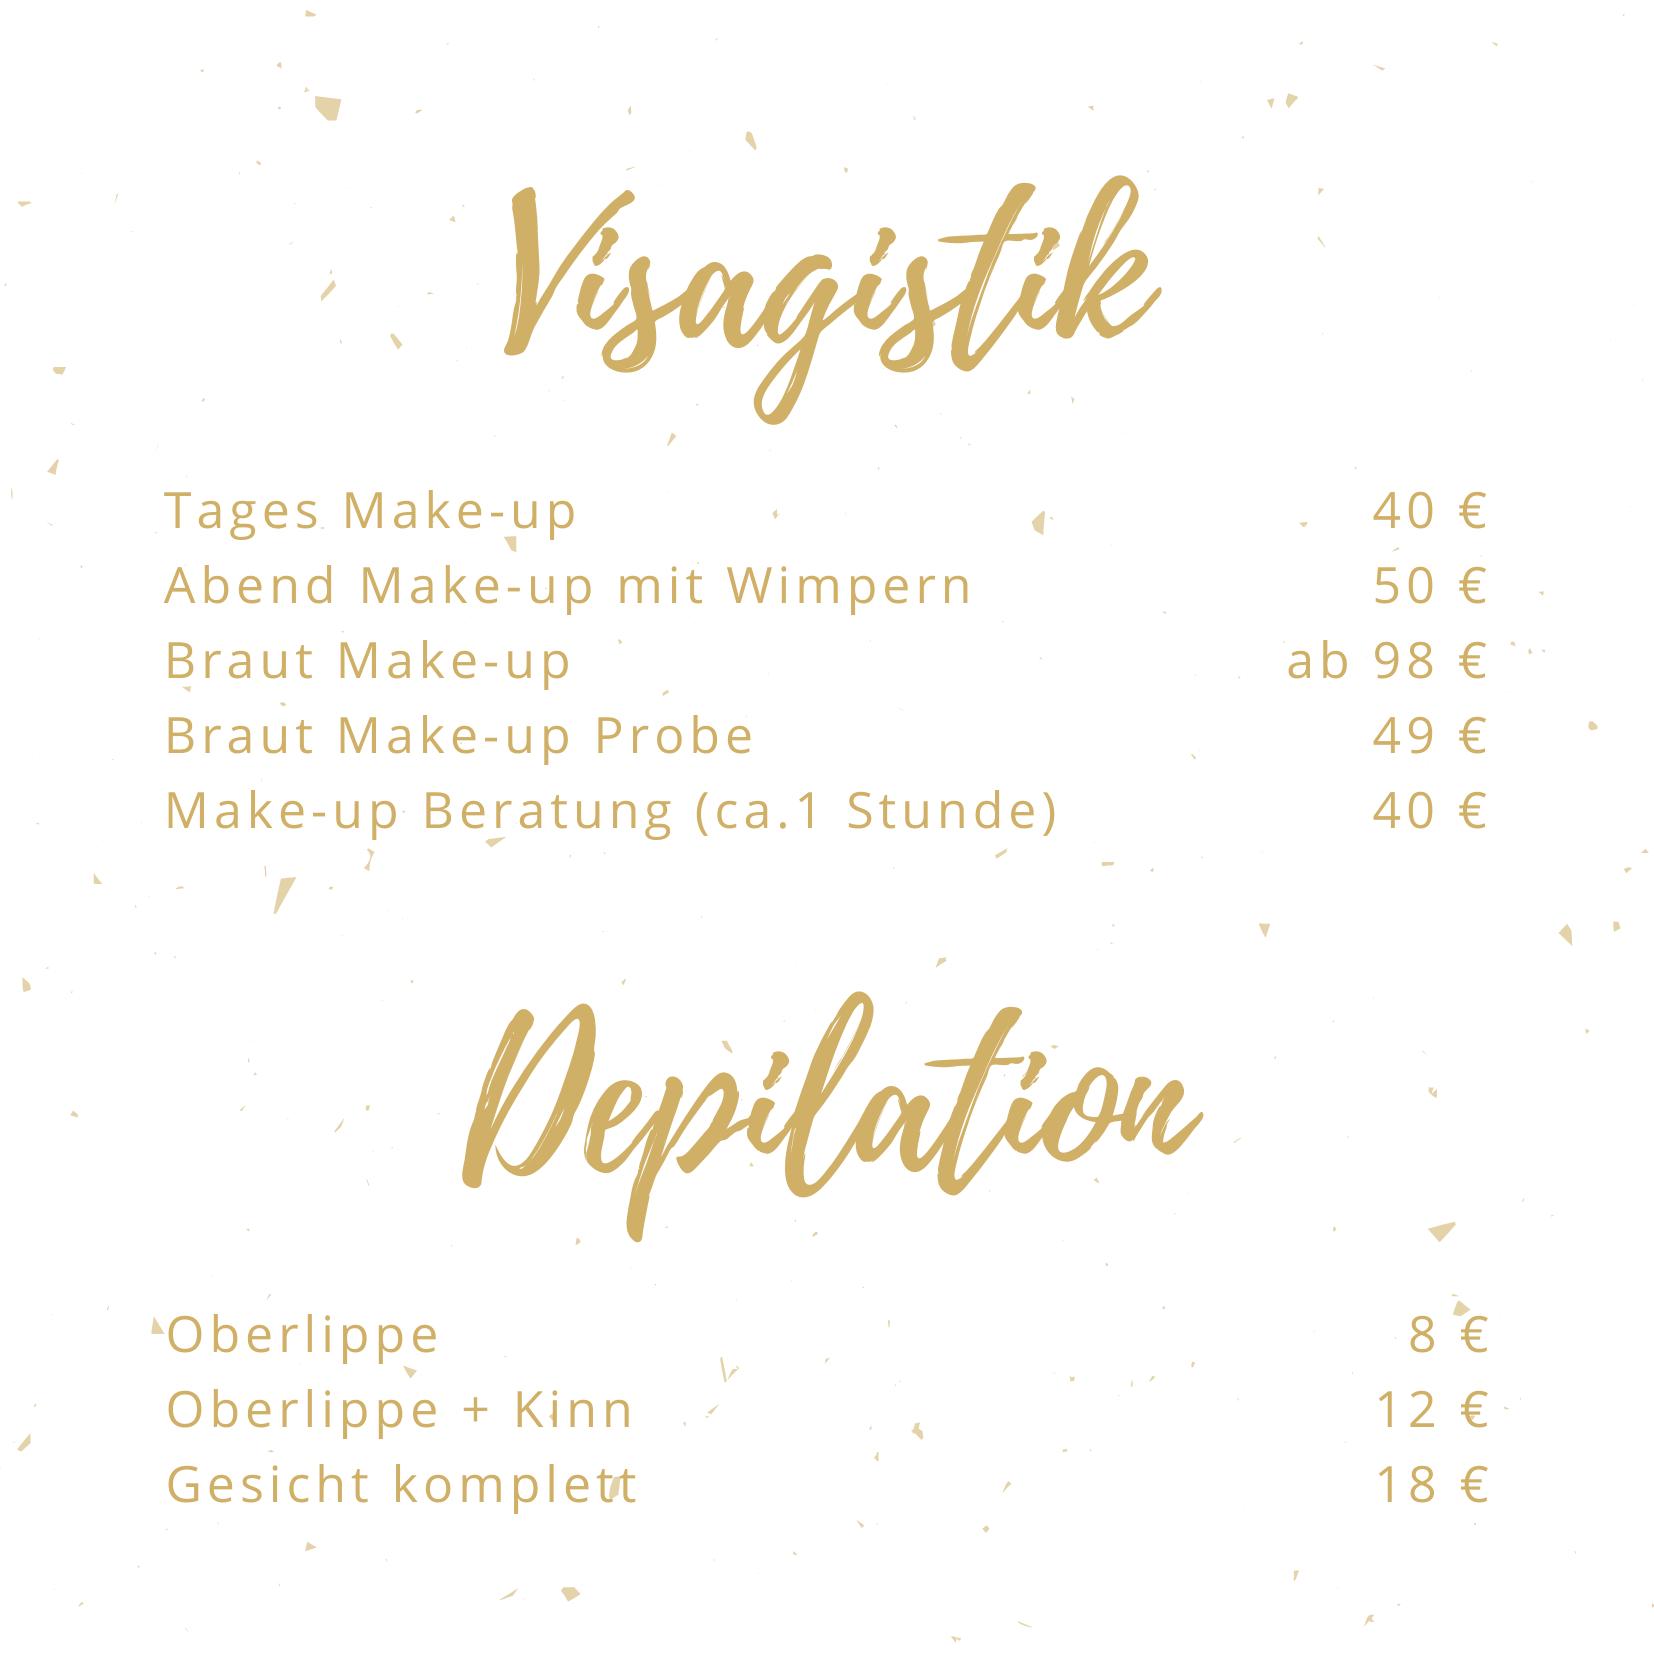 Visagistik Tages Make-up 40 € Abend Make-up mit Wimpern 50 € Braut Make-up ab 98 € Braut Make-up Probe 49 € Make-up Beratung 40 € Depilation Oberlippe 8 € Oberlippe + Kinn 12 € Gesicht komplett 18 €